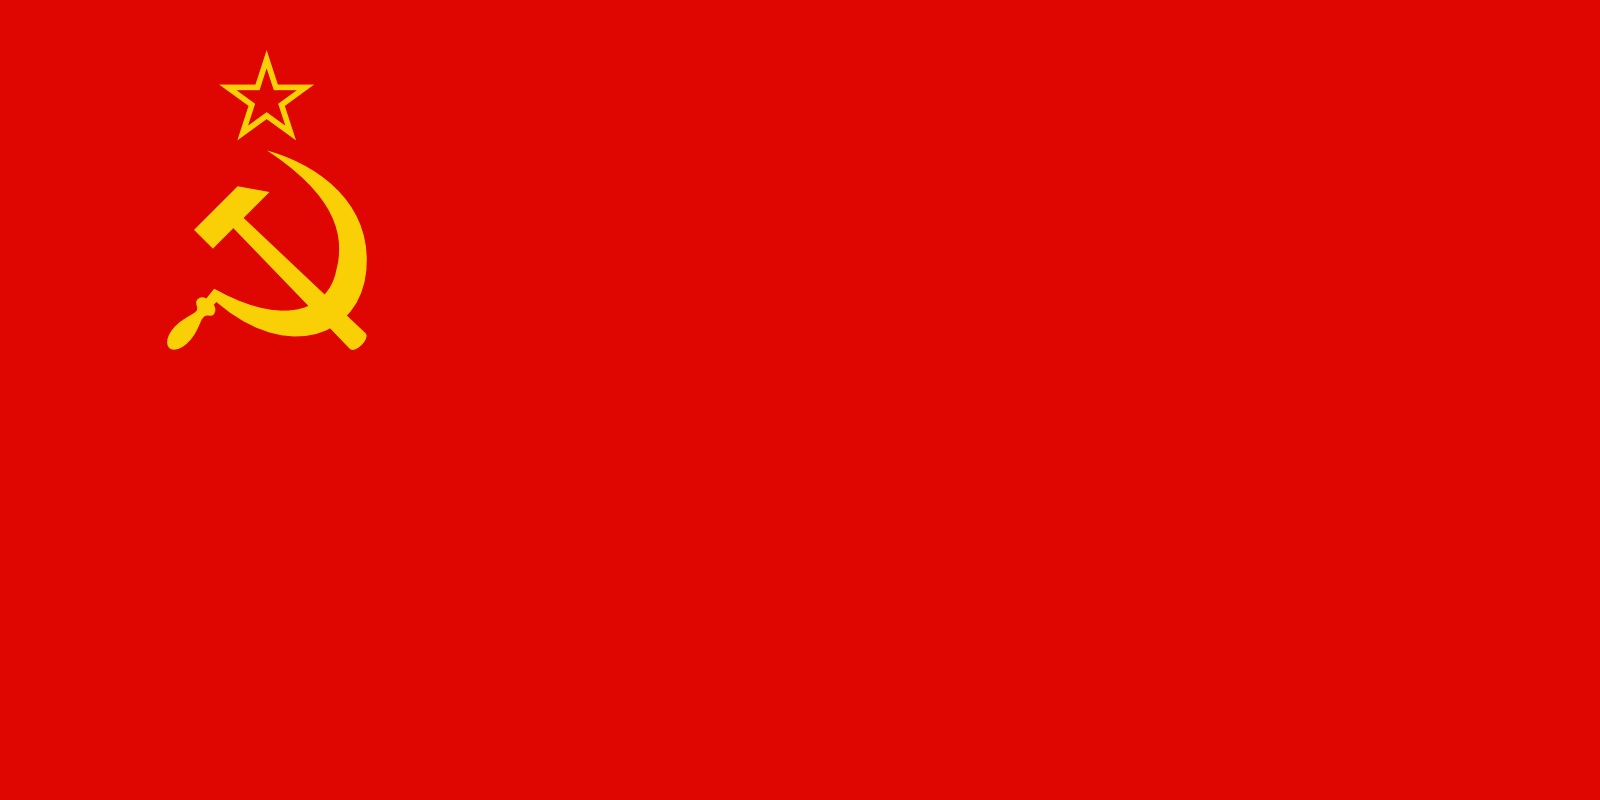 File:Flag of the Soviet Union.png.